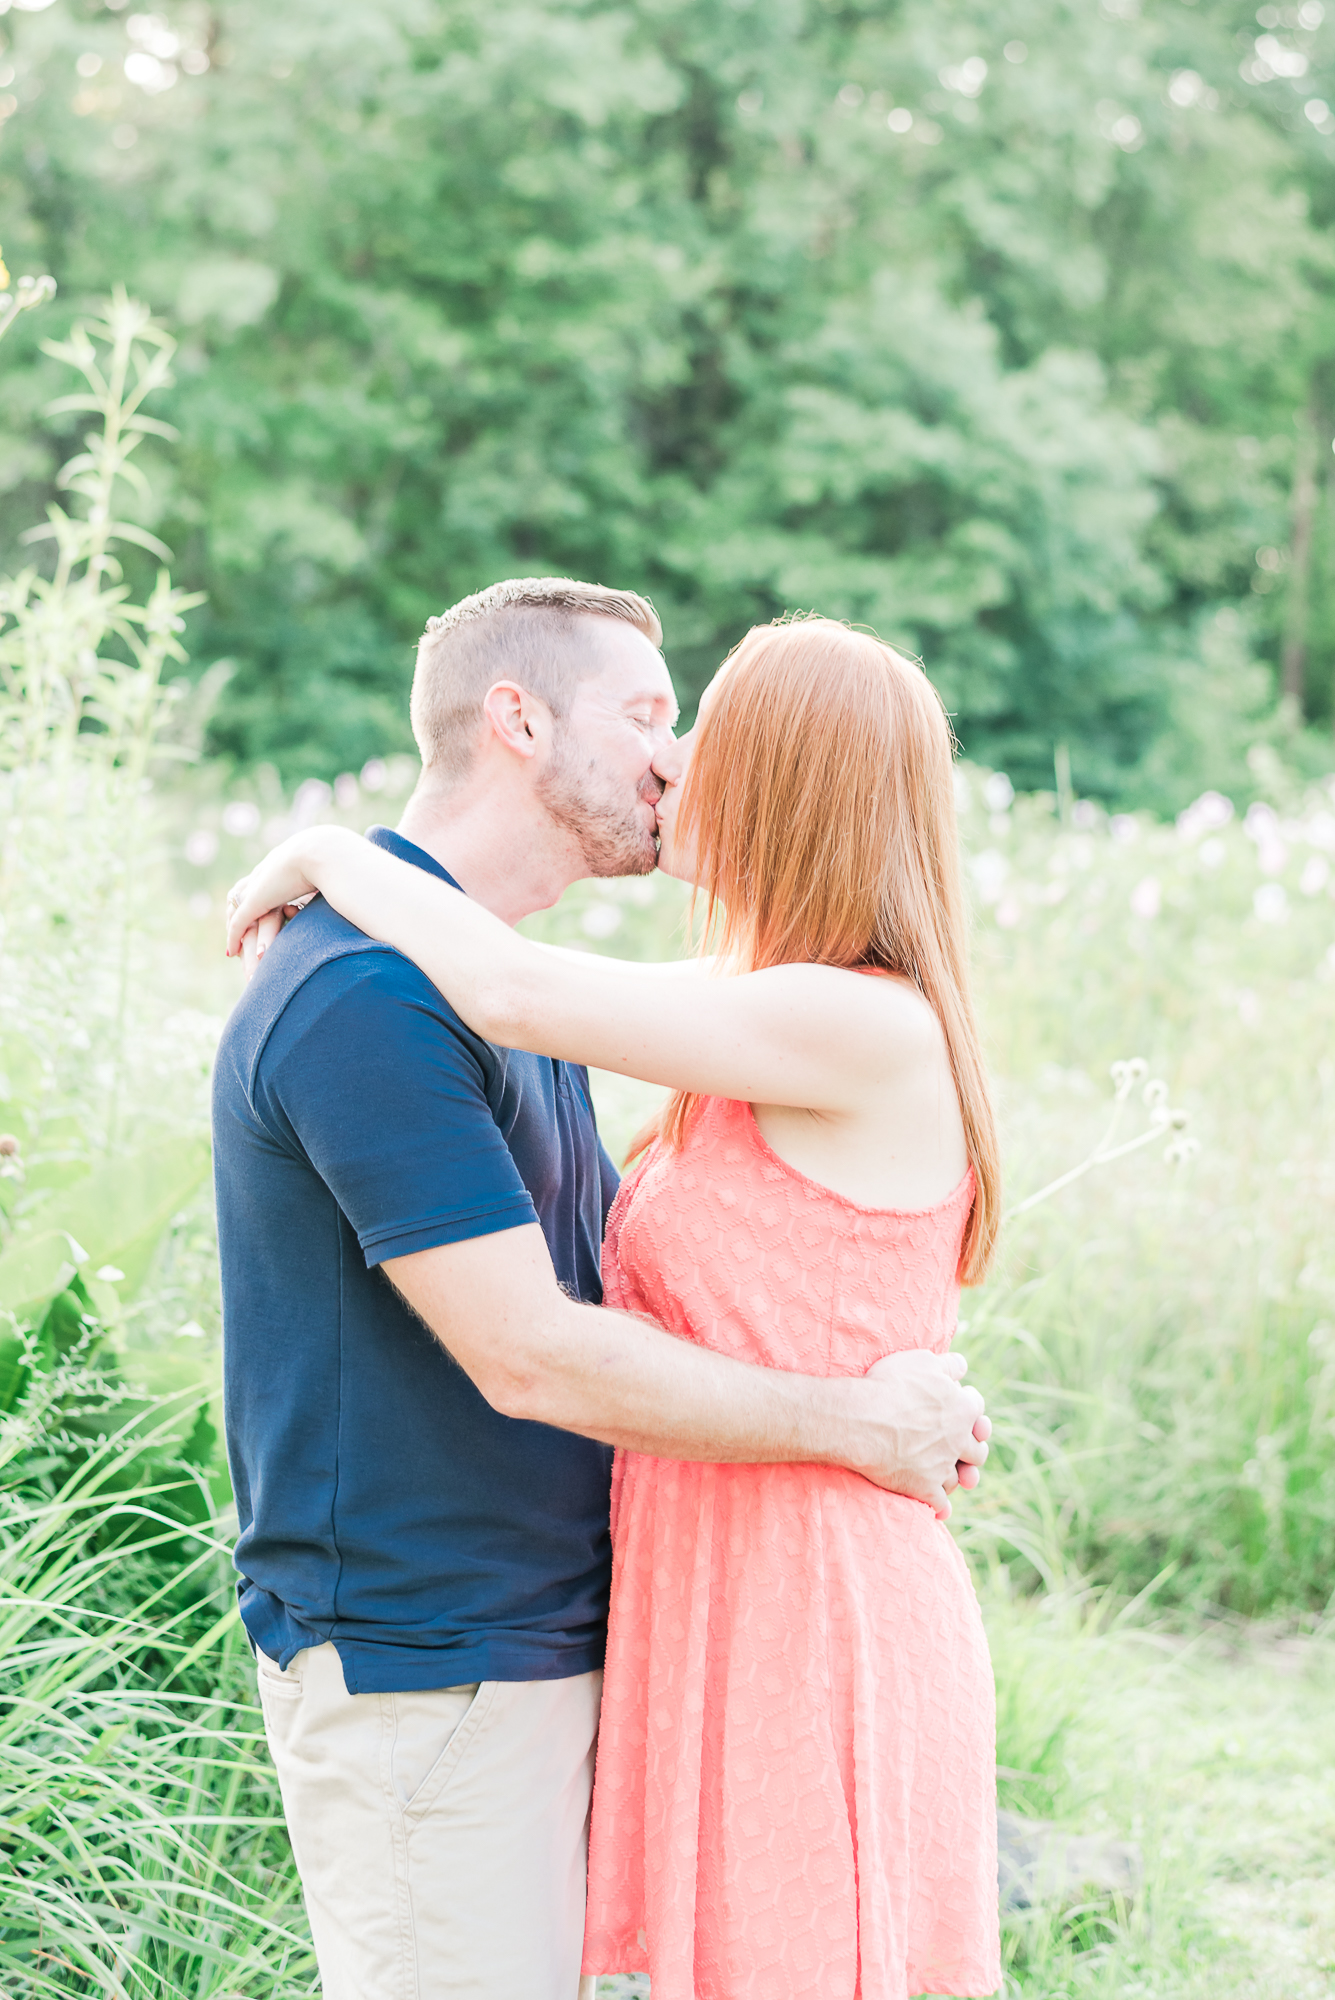 AB Favorites_Katy+Brian_Engagement Session_Brecksville Reservation_Brecksville_Ohio-19.jpg